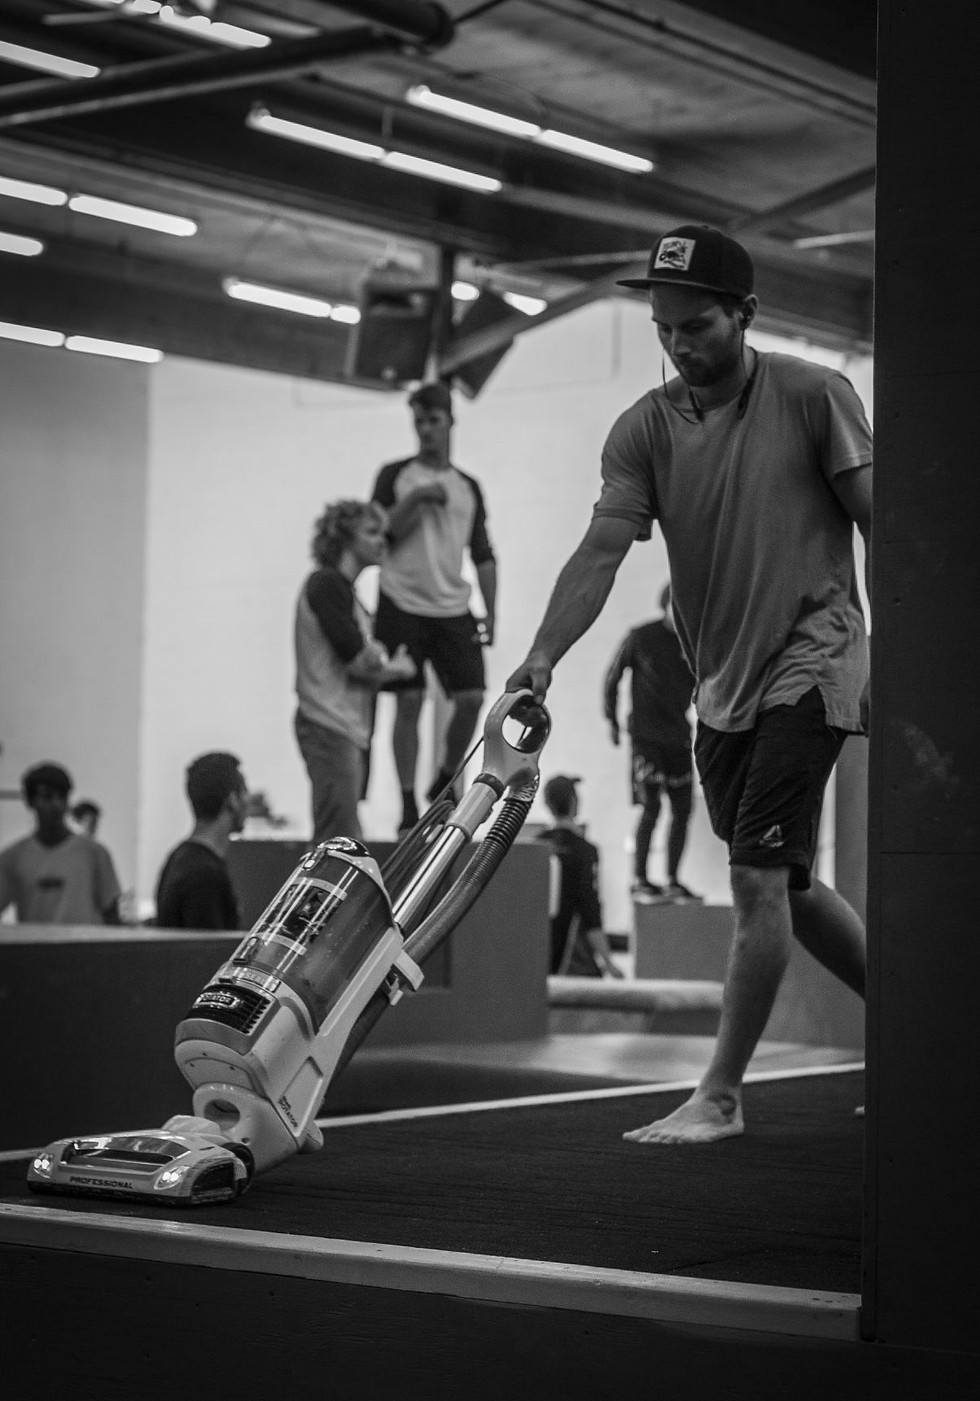 Marino vacuums the back corner of the gym on Oct. 19, 2018. Behind him, Balls Jam, the annual fall meet-up of athletes, starts up.  Unparalleled Movement was a massive financial venture for Marino, who lived and slept in the gym after first opening it to save money on rent. He says it was worth it, and that he enjoys the ability to be self-employed in a sport he cares about.